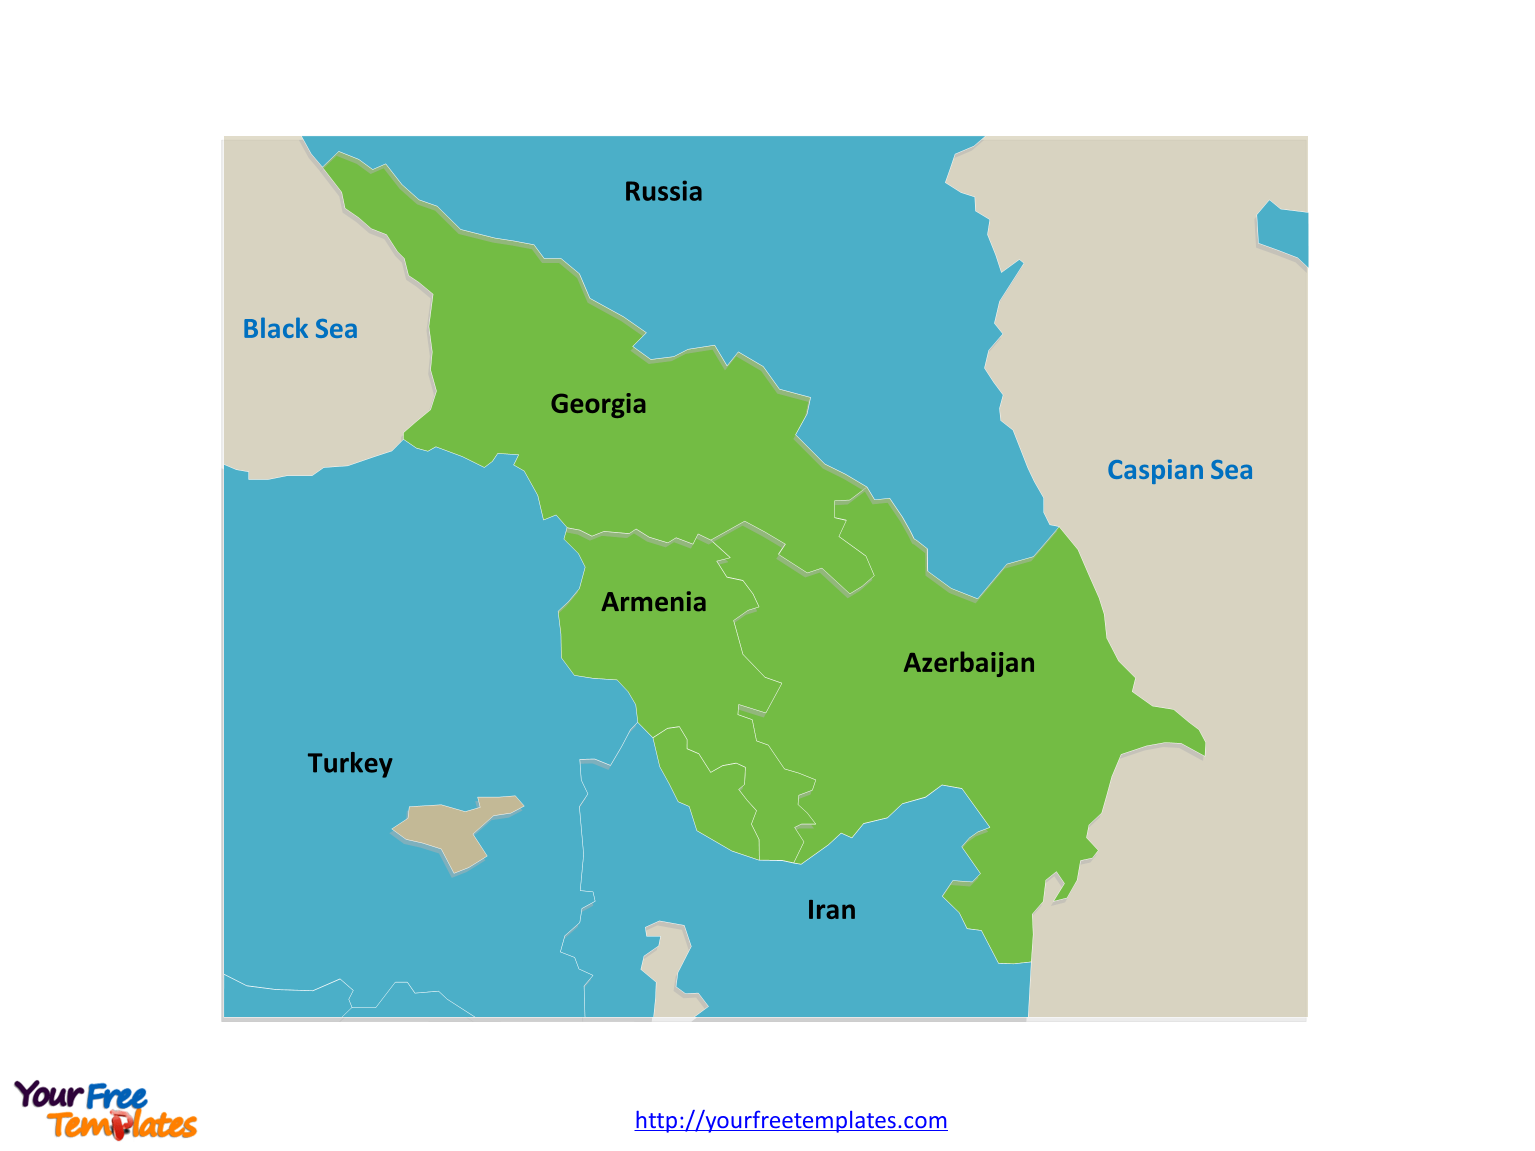 Caucasus map labeled with country names